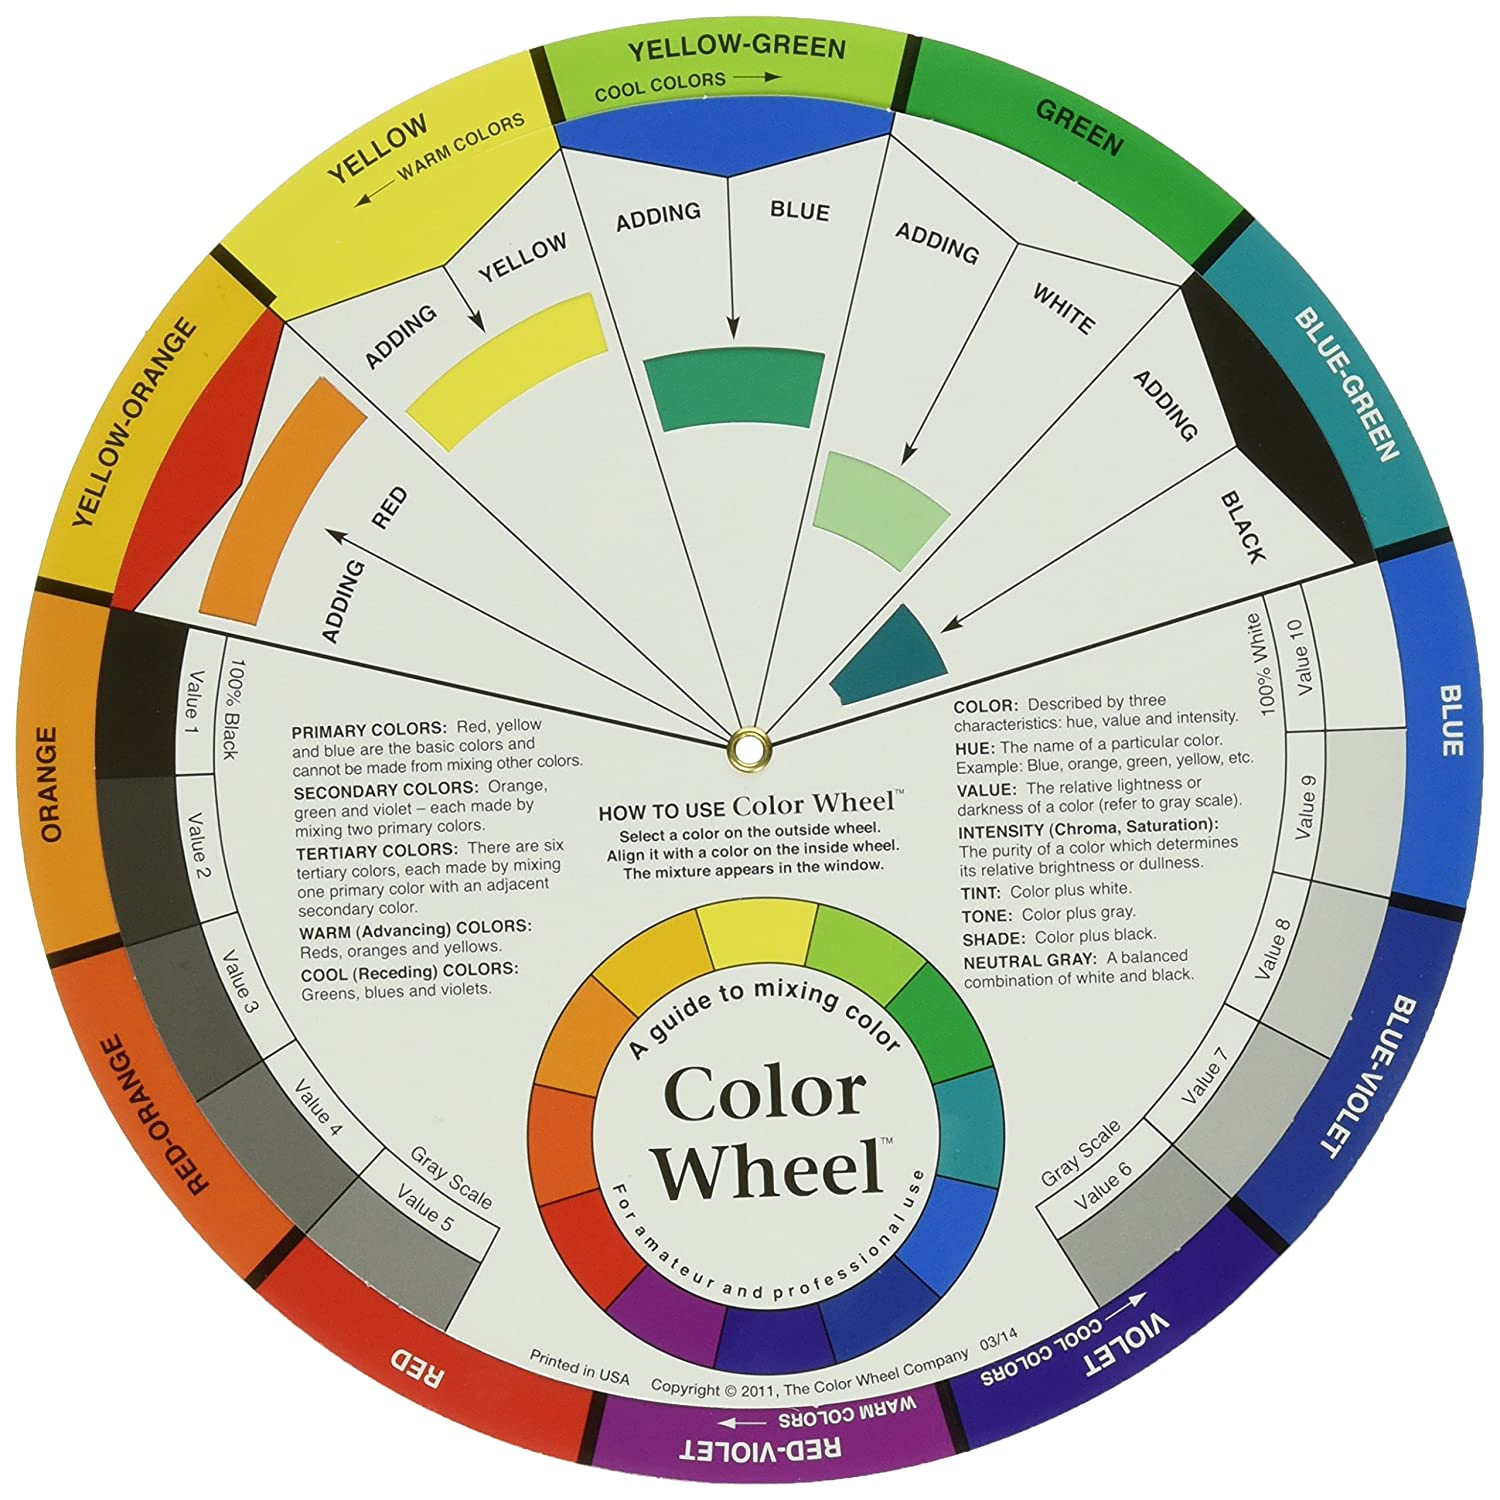 Color wheel complementary colors - Color Wheel Complementary Colors 19